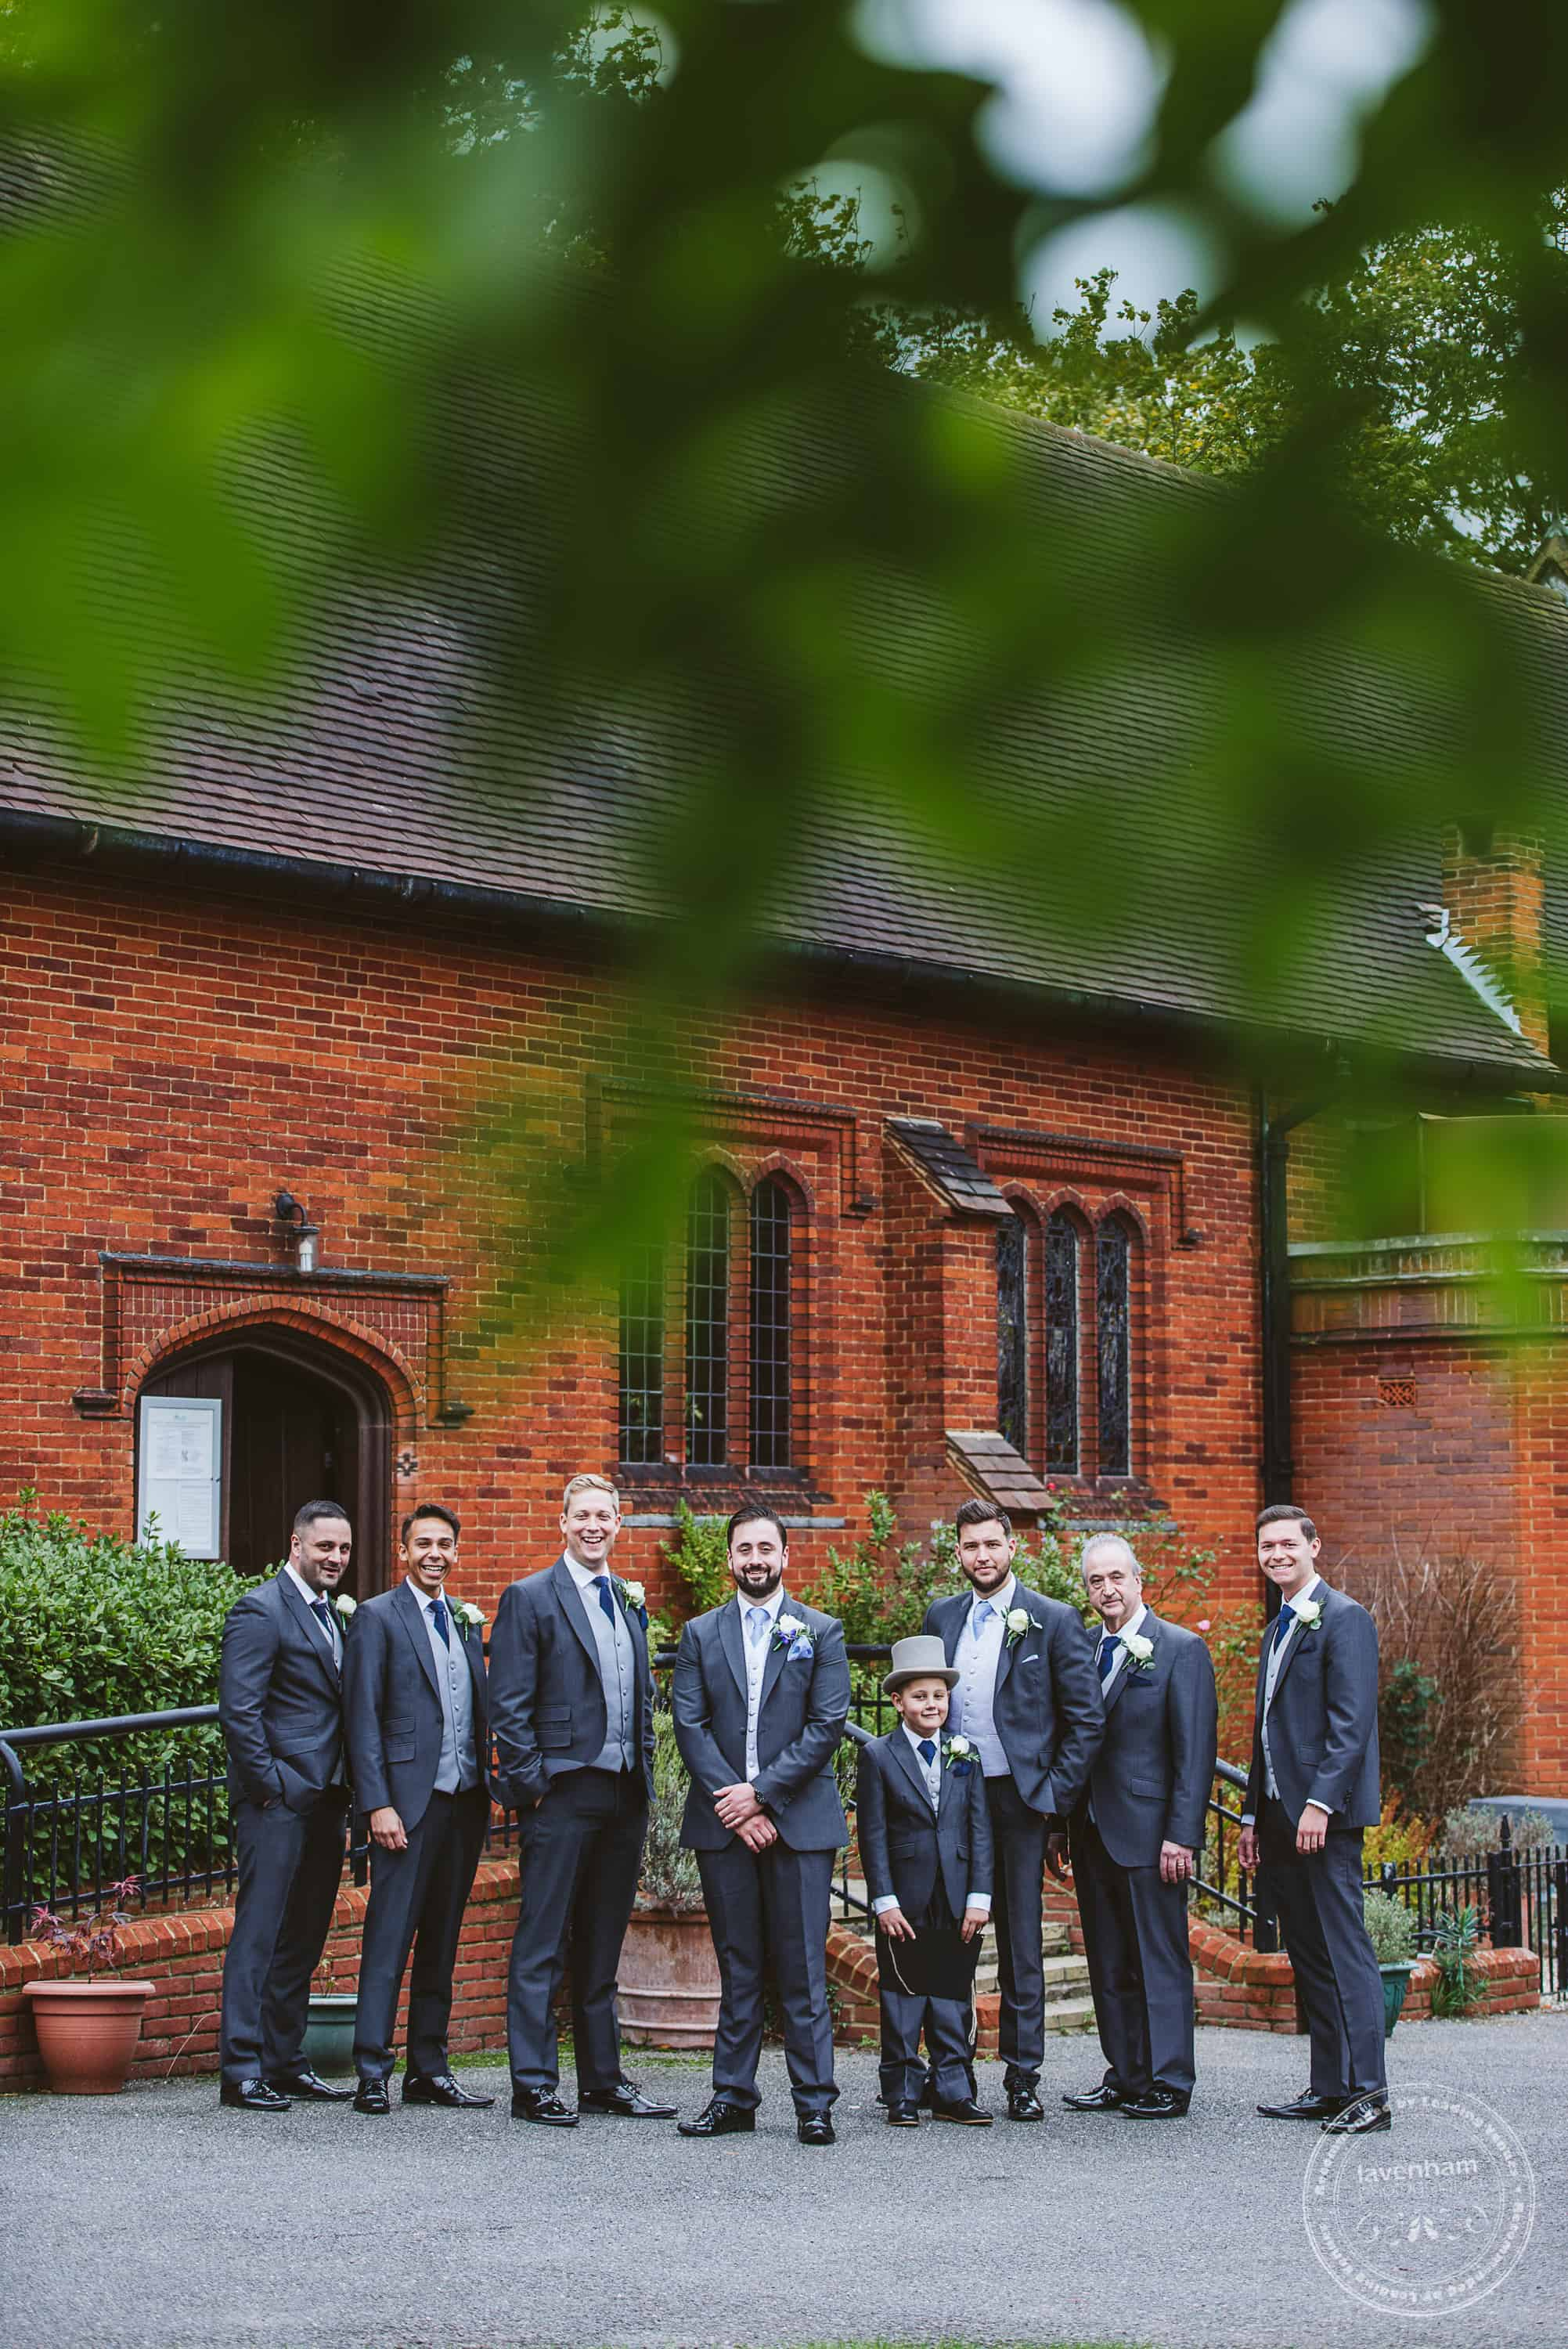 261019 Bull and Willow Room Essex Wedding Photographer 014